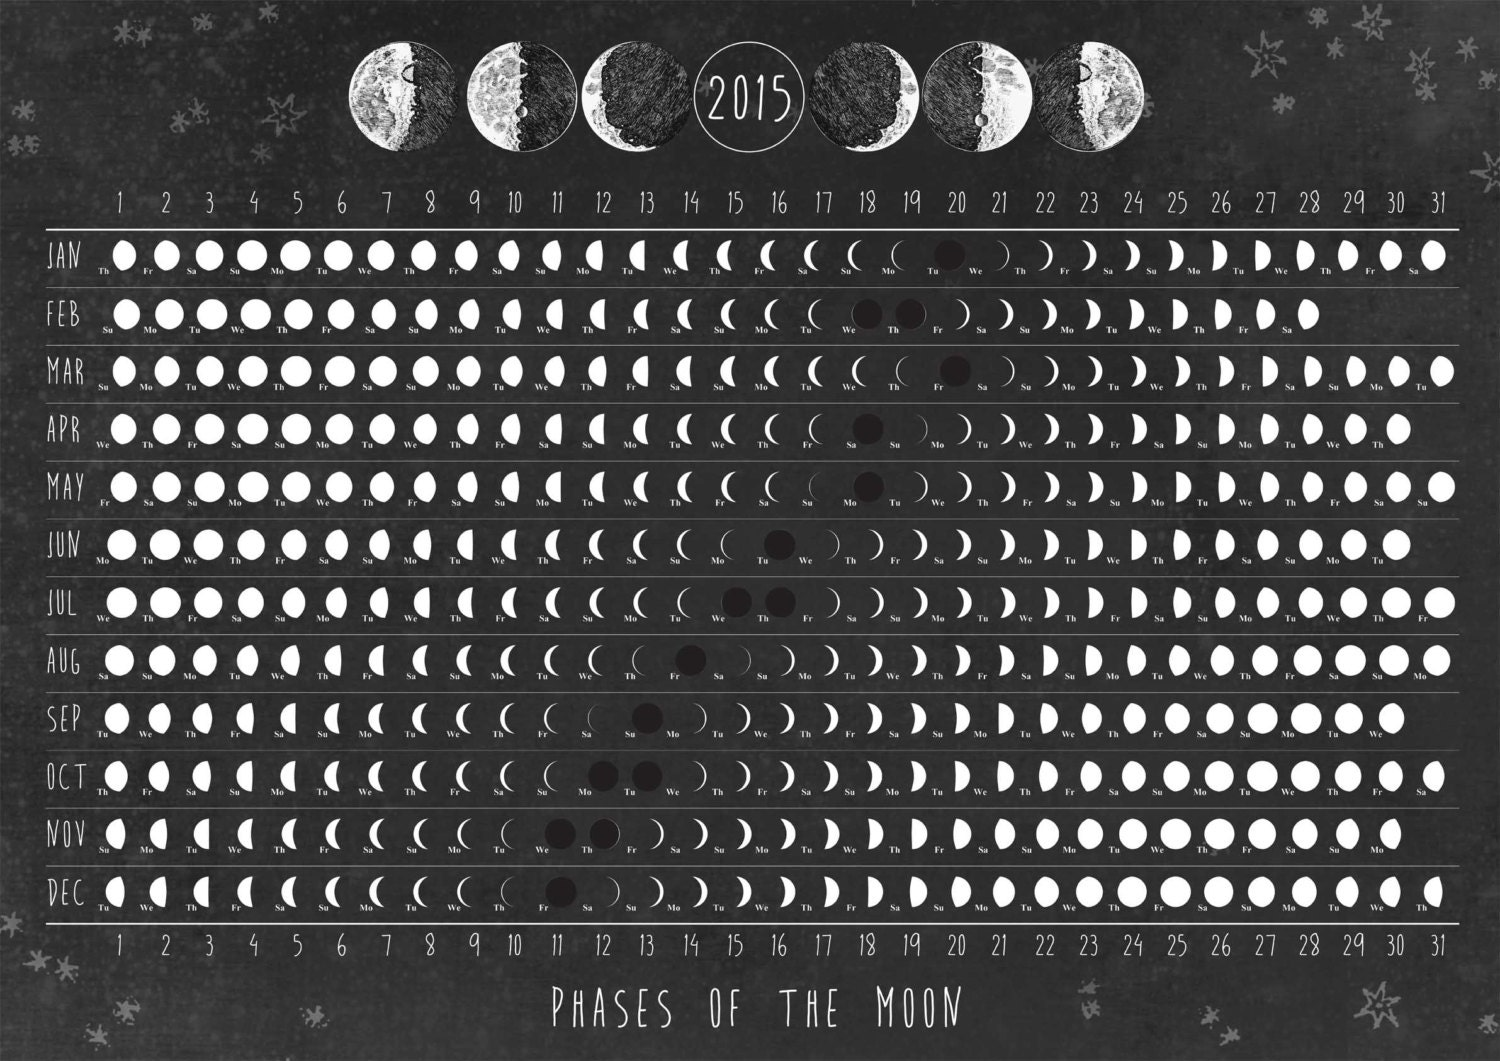 Moon Images 2015 2015 Moon Cycles Calendar